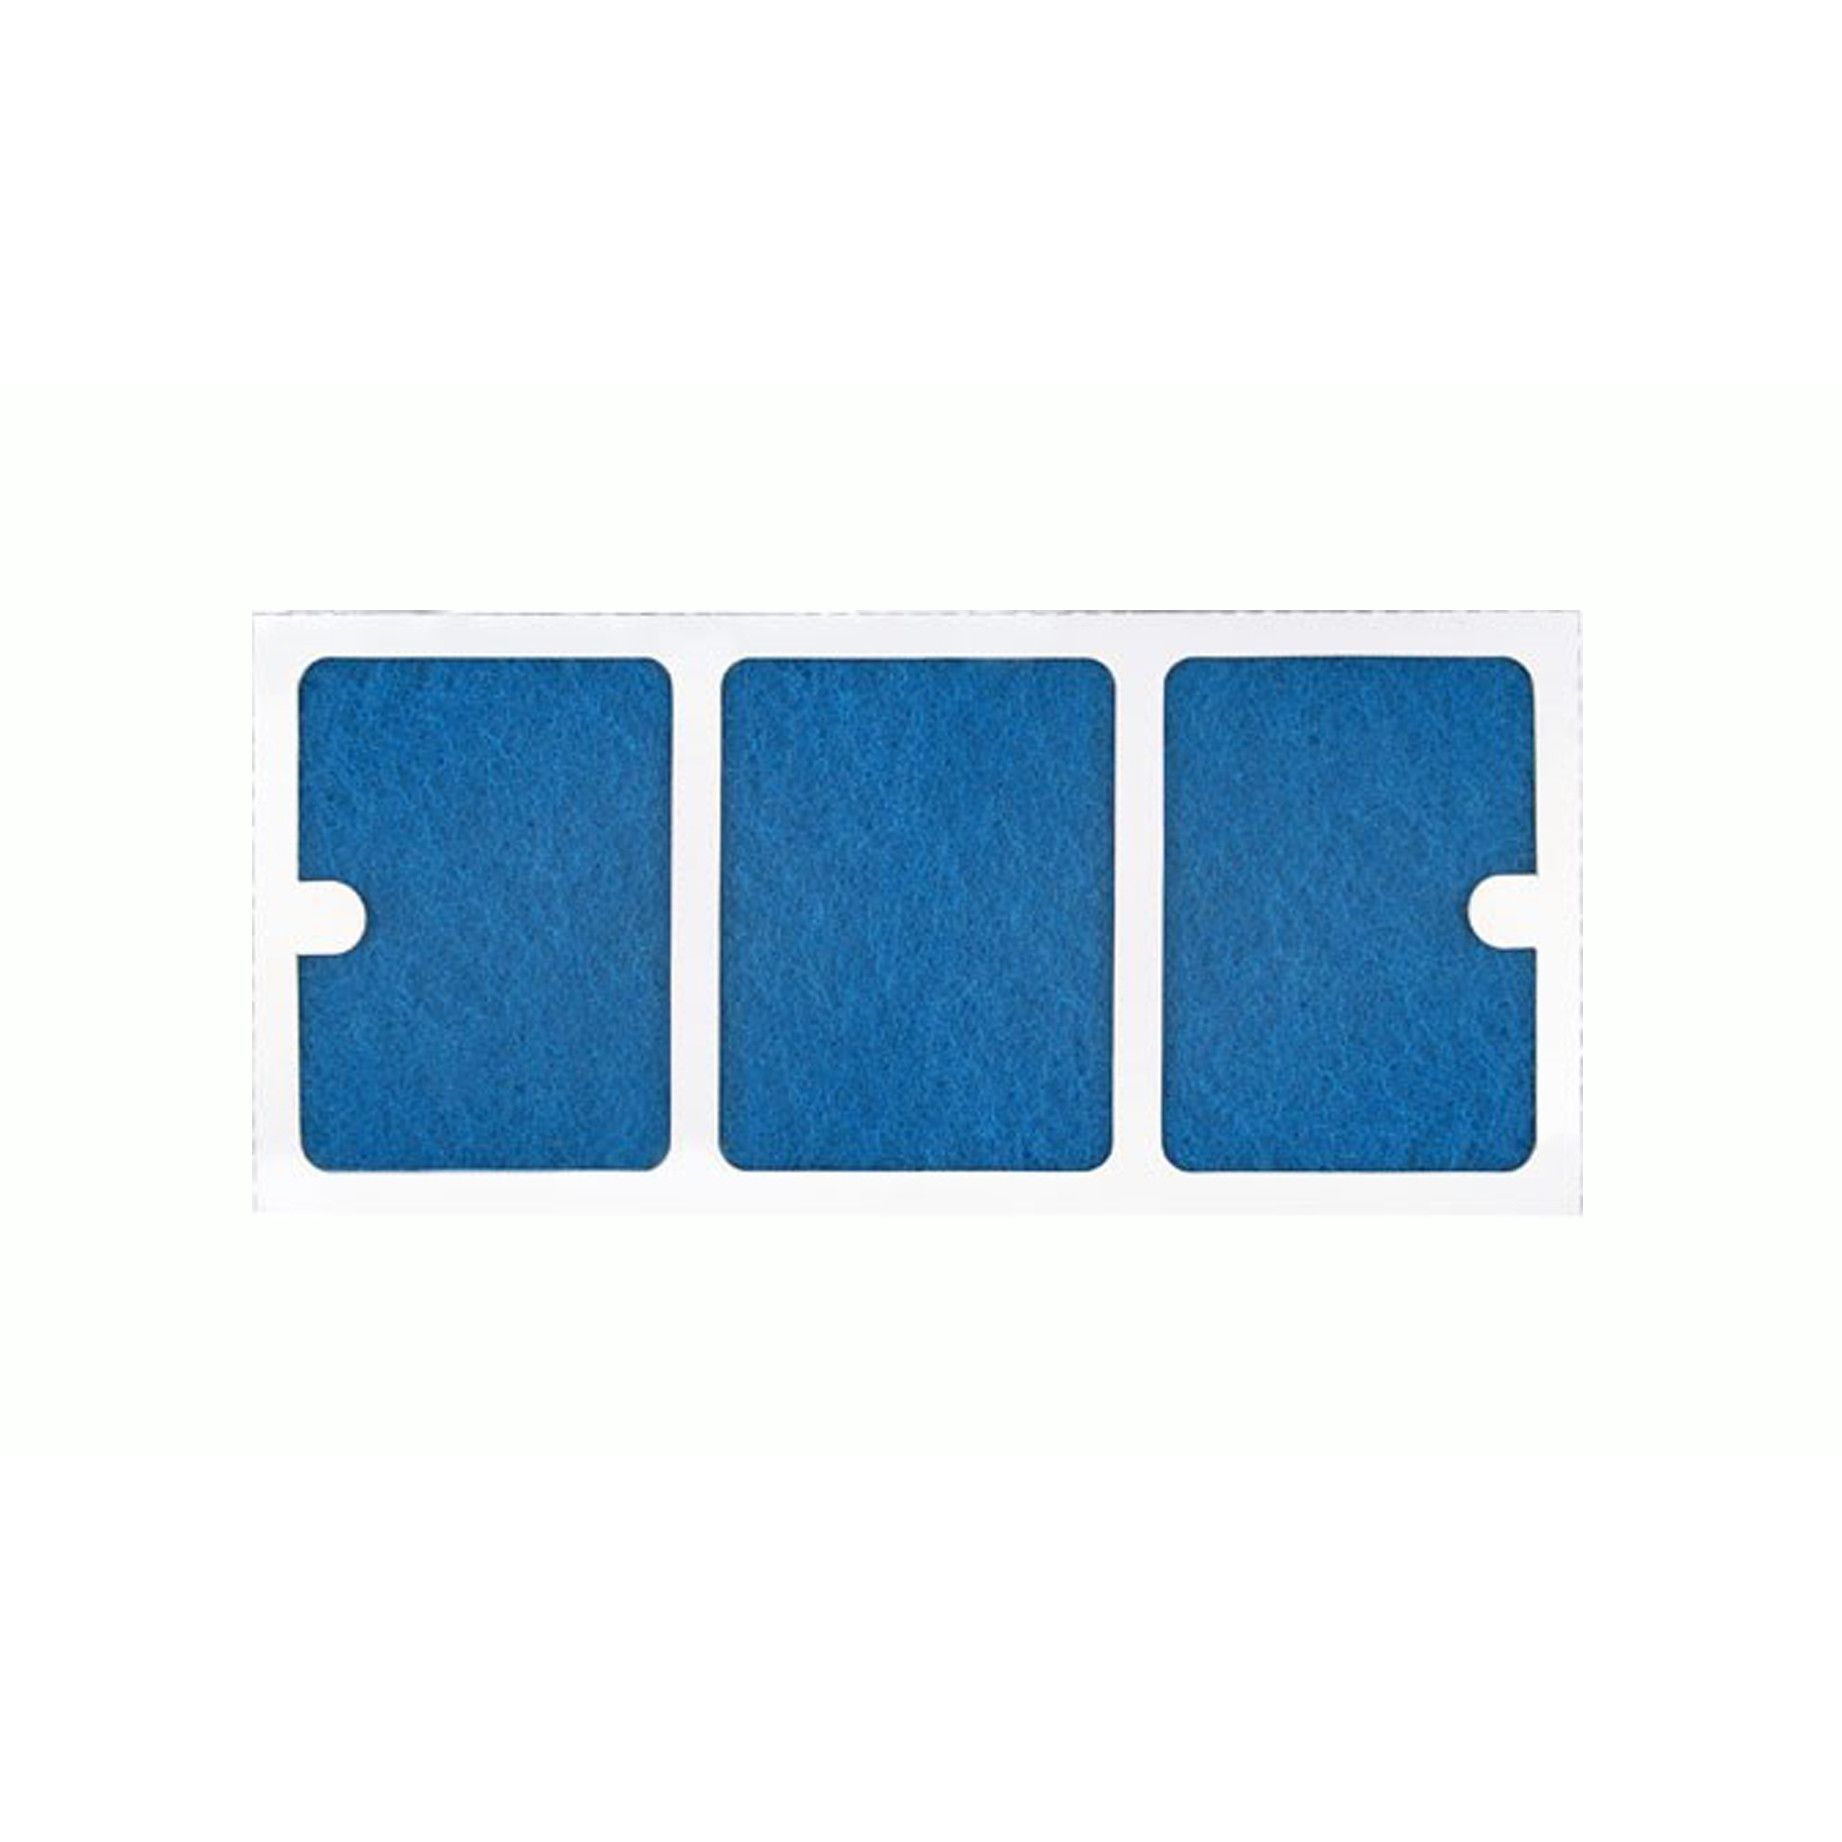 Replacement HEPA filter for Surround Air MultiTech XJ